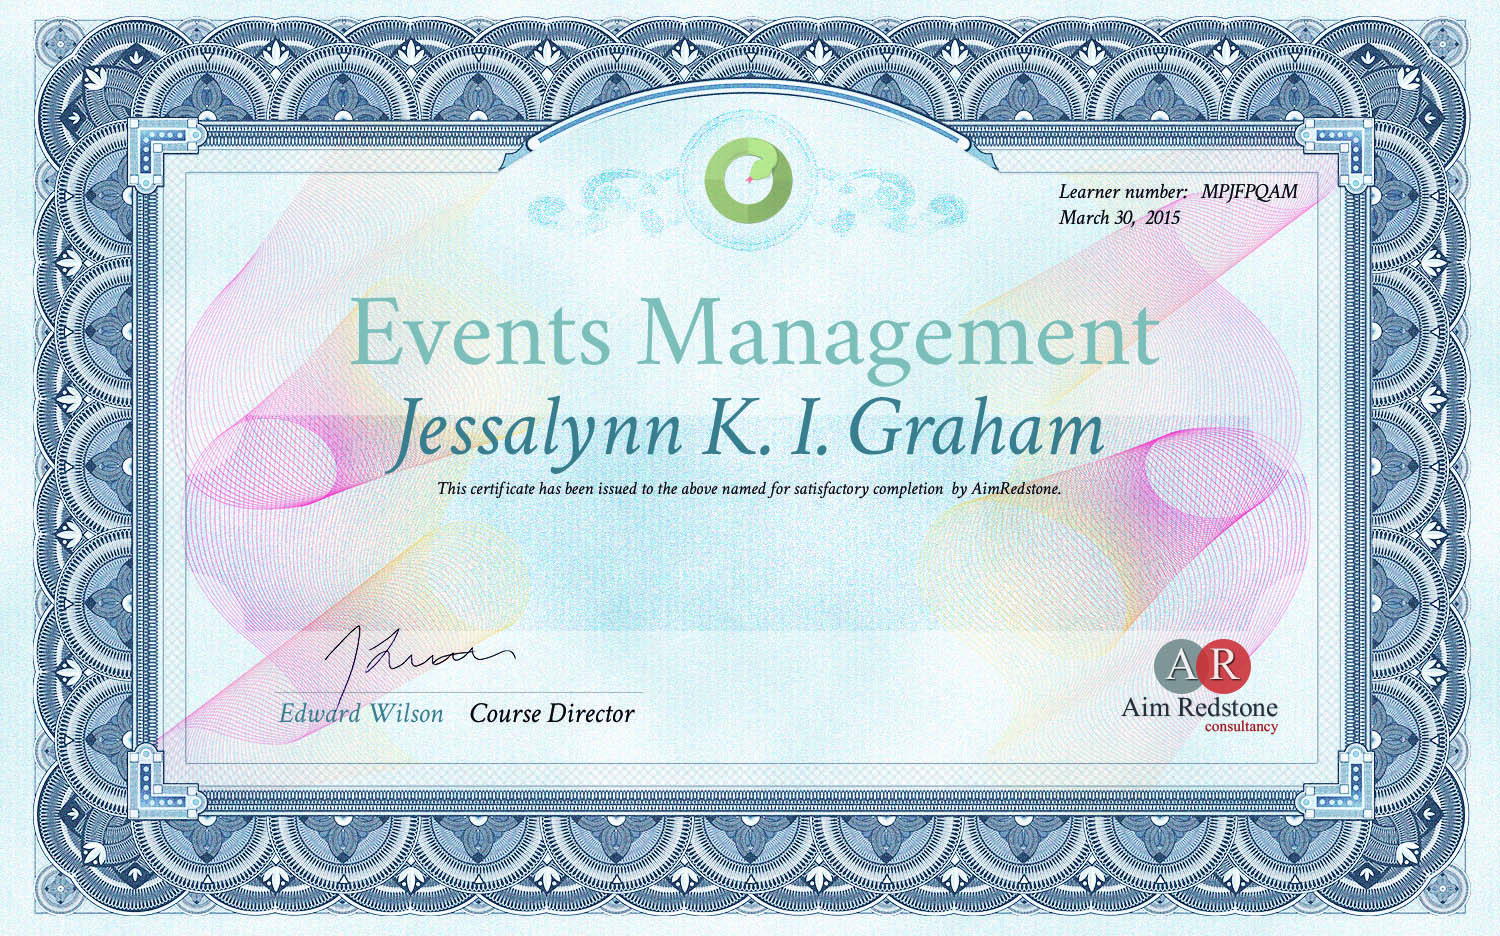 Events Management Certificate